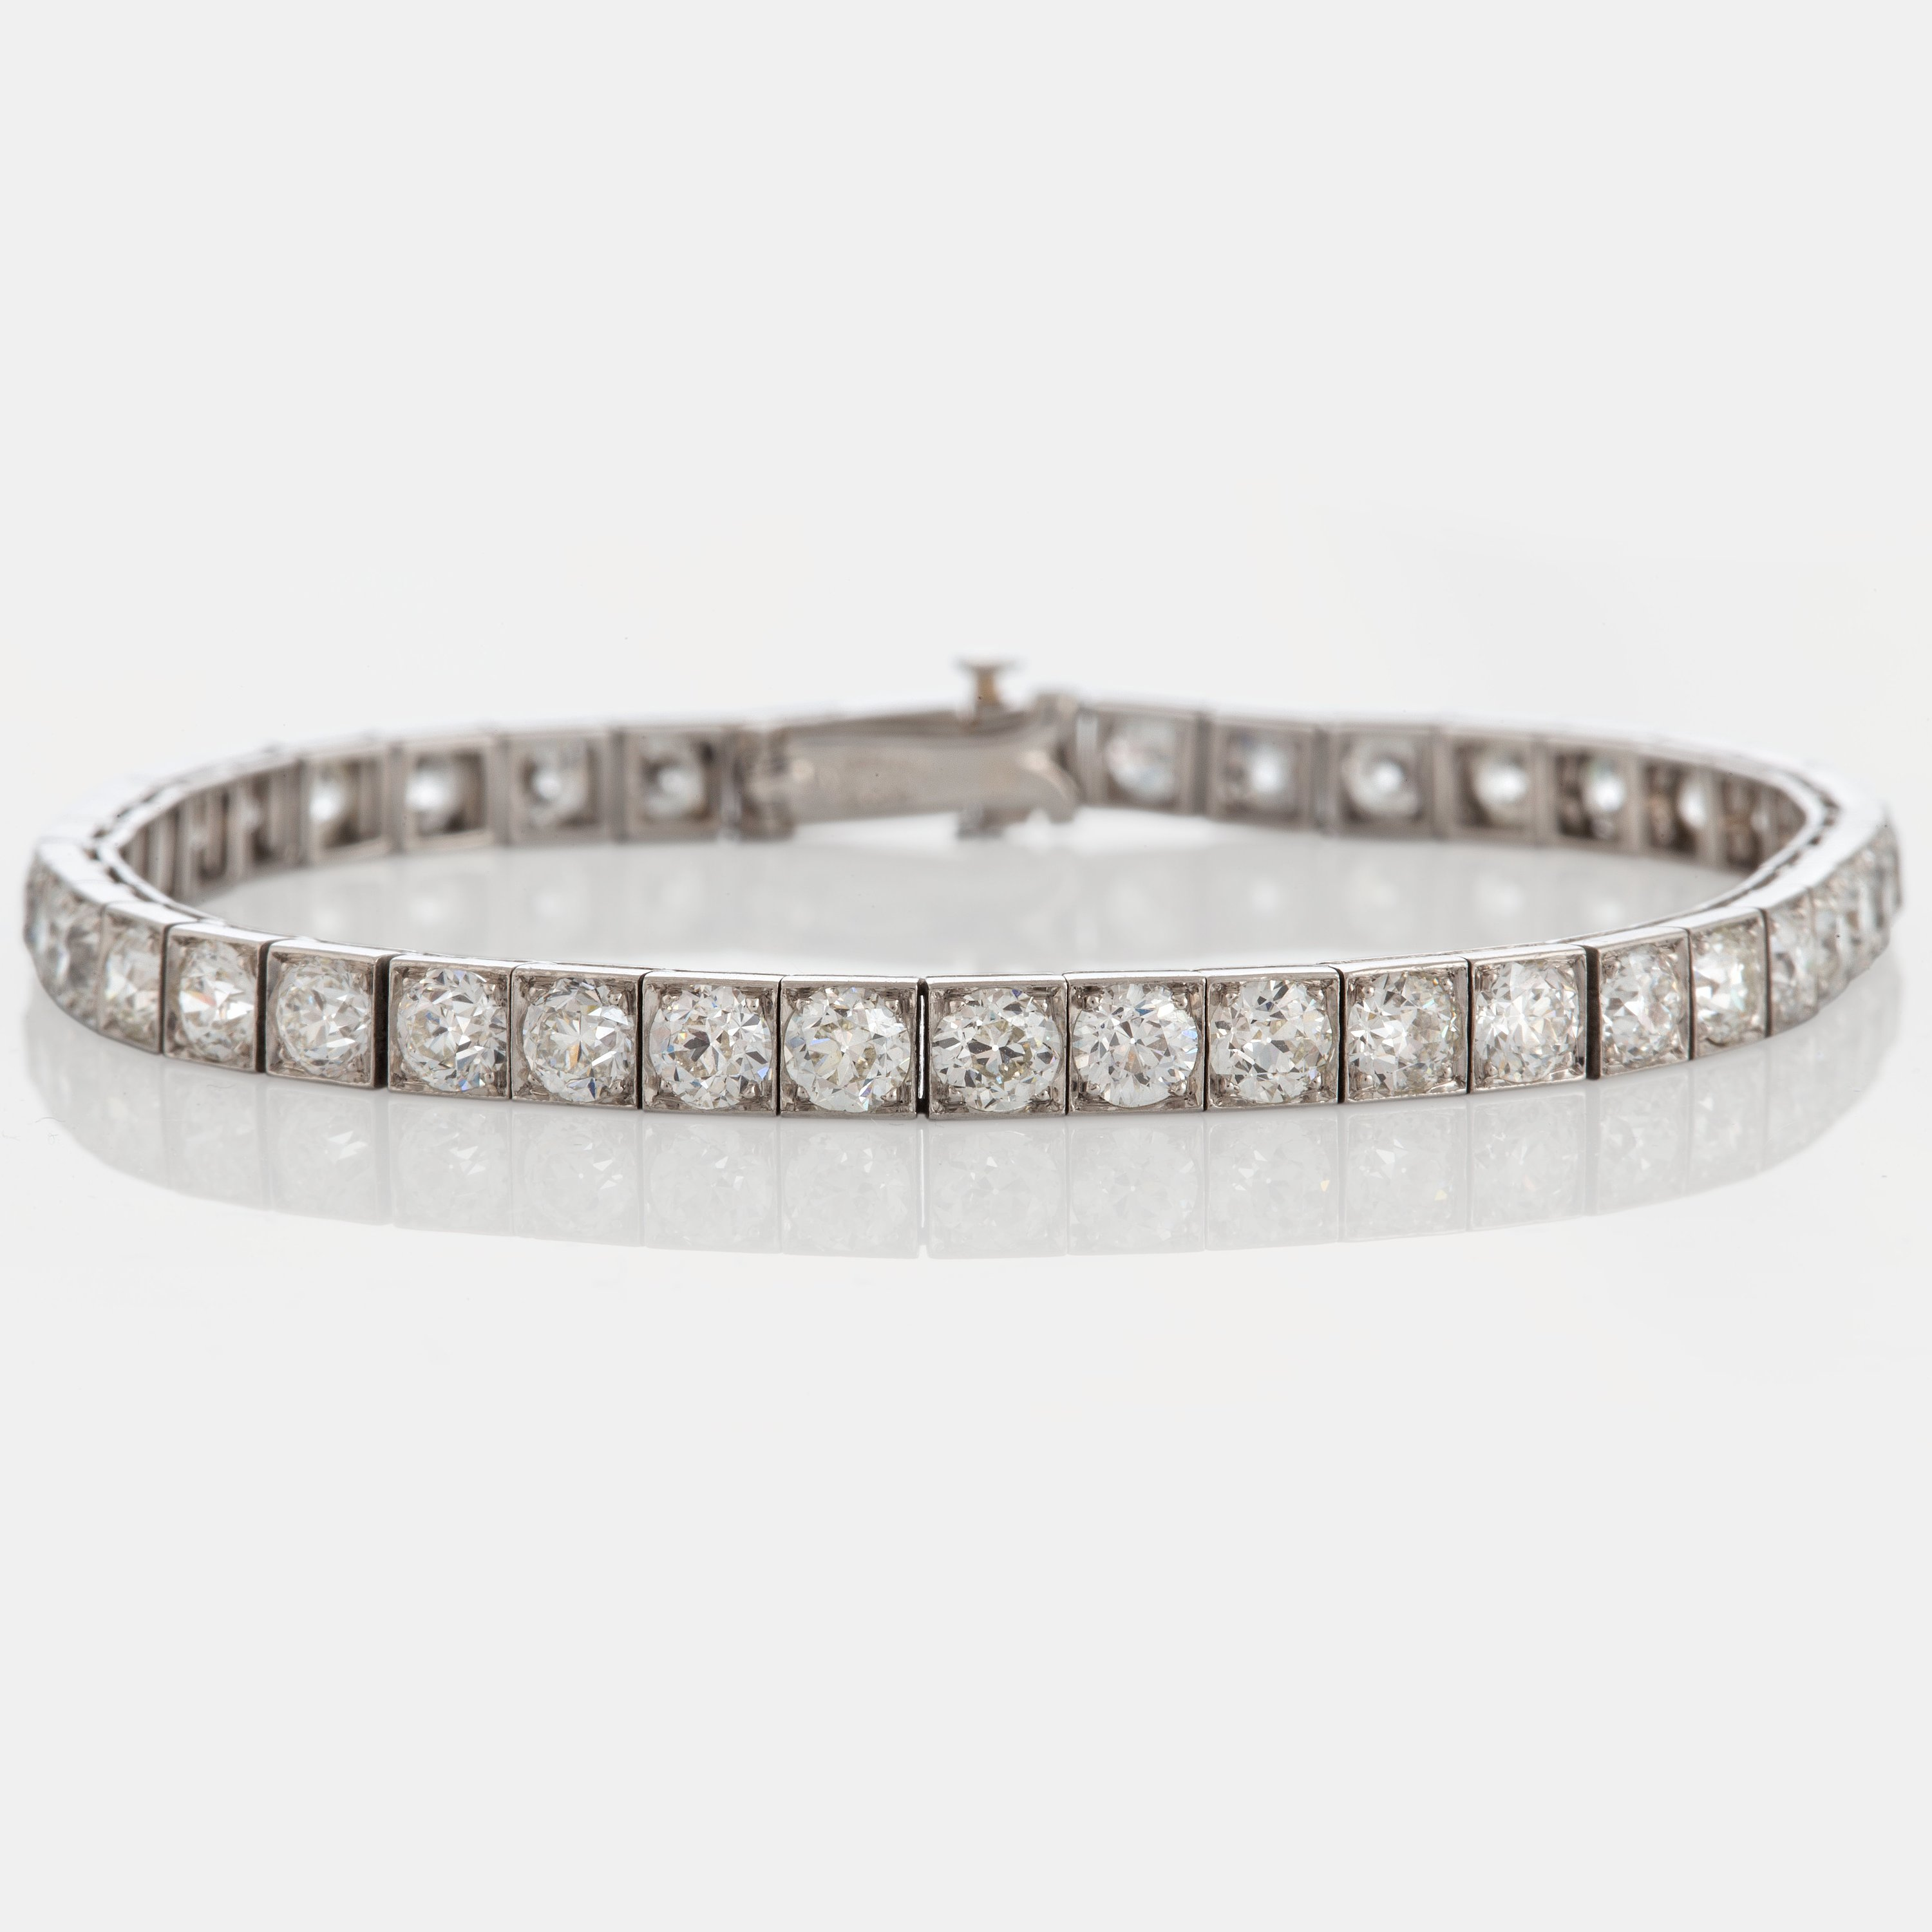 A Tiffany Tennis Bracelet In 18k White Gold Set With Old Cut Diamonds With A Total Weight Of Ca 6 45 Cts Bukowskis